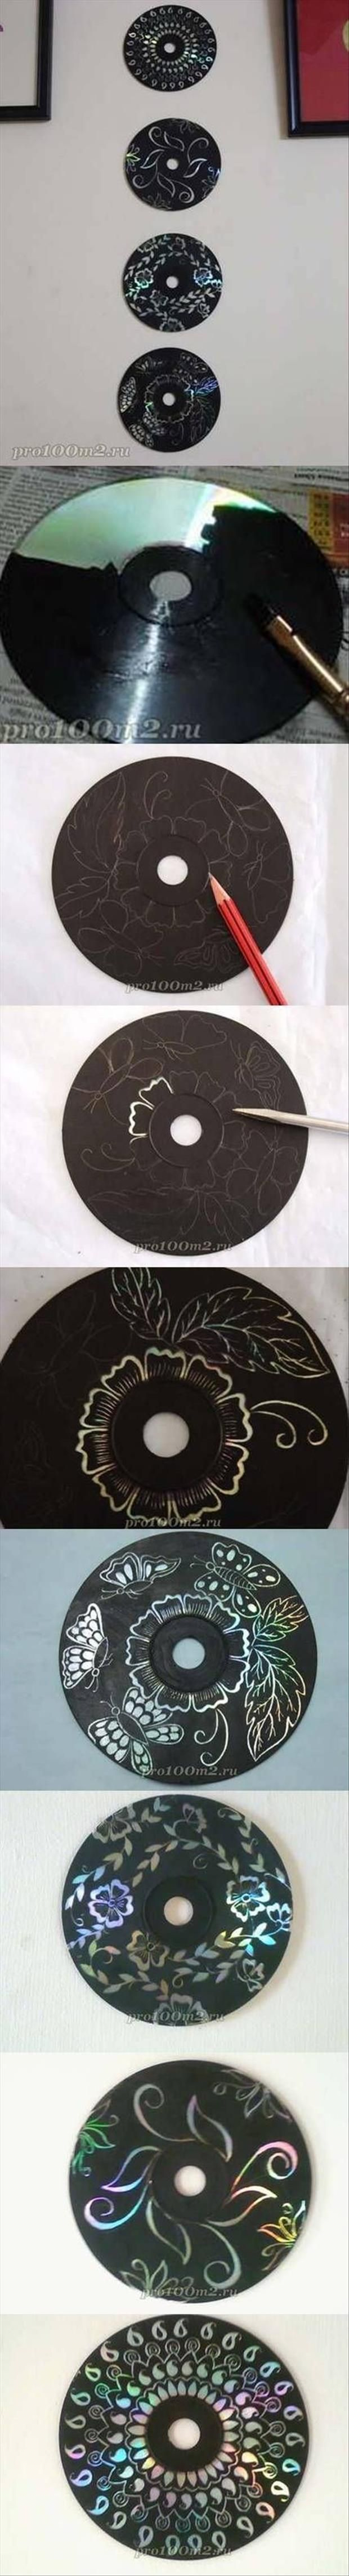 Upcycled cd art